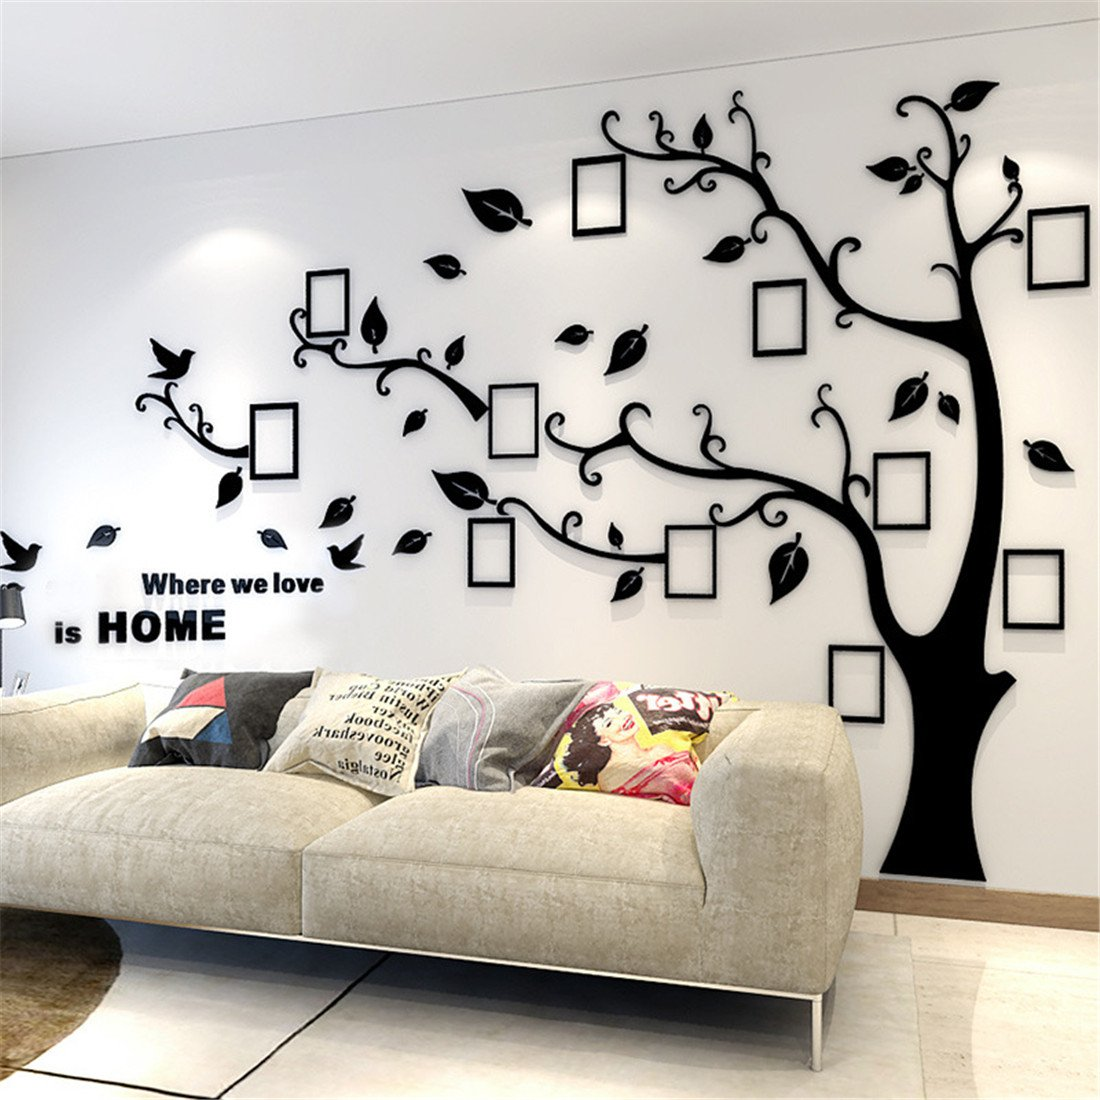 Tree wall decals to conserve sweet memories in the interior design